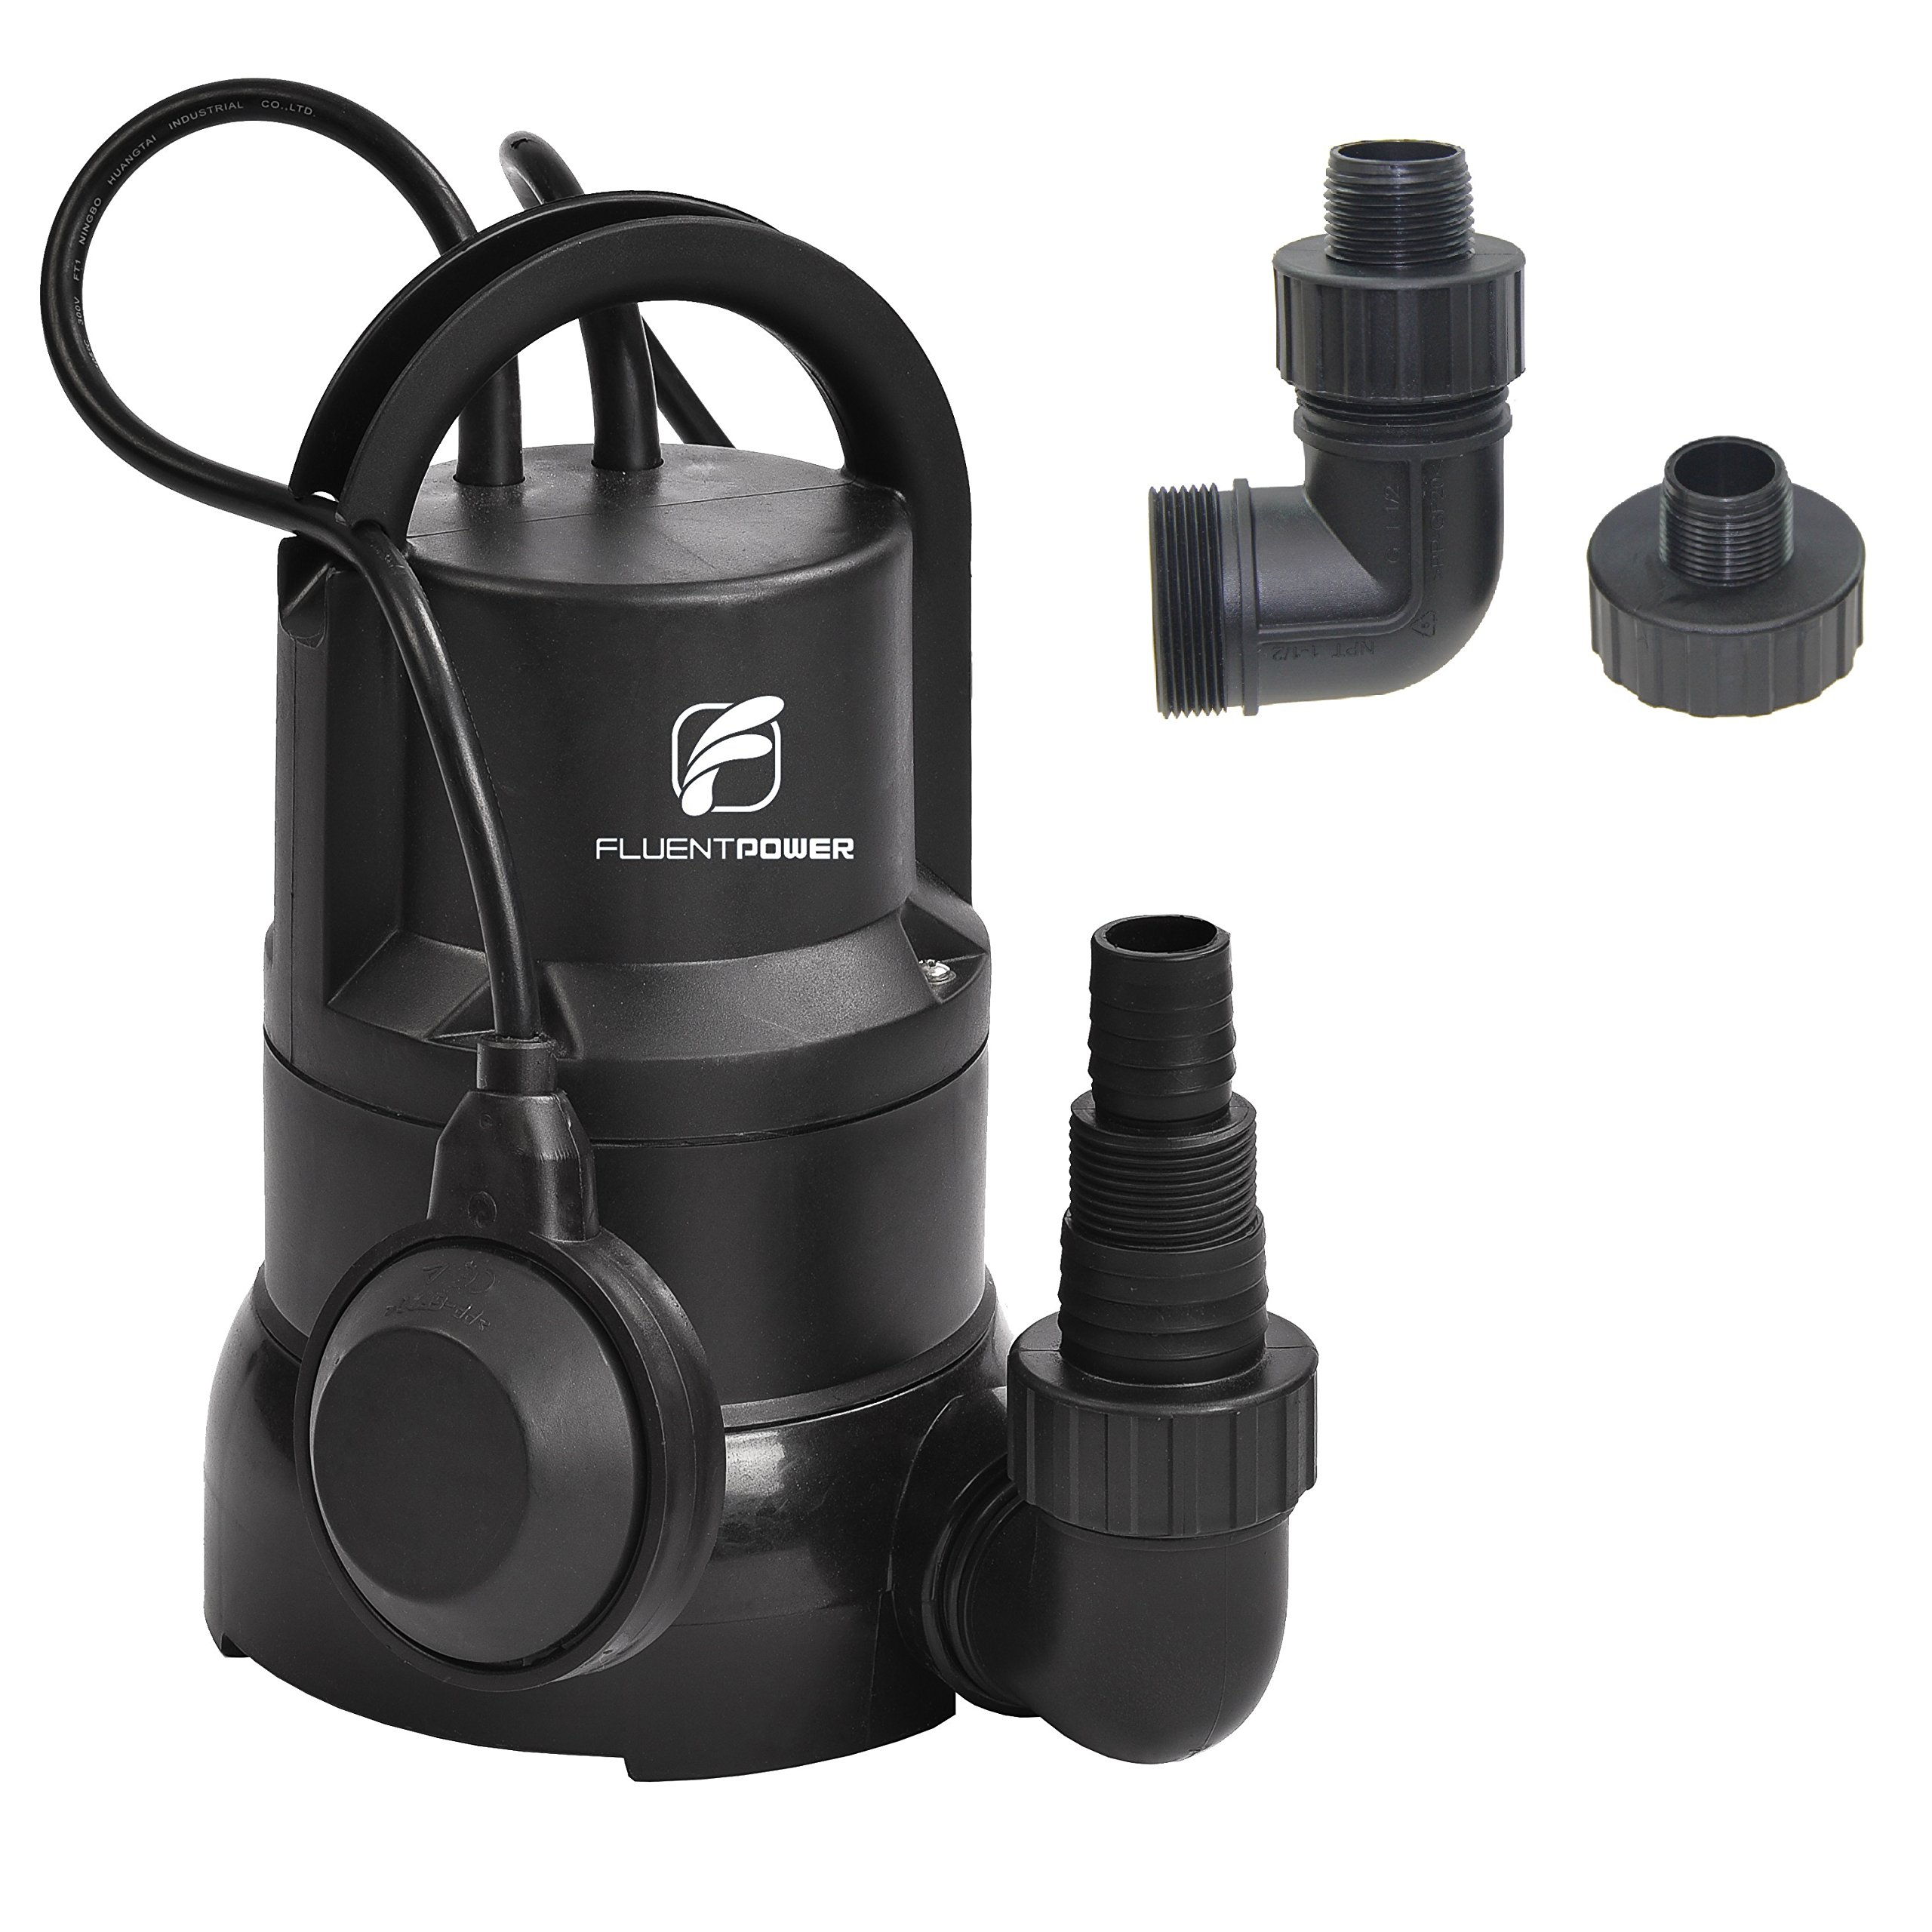 FLUENT POWER 1/3 HP Electric Submersible Small Utility Drain Water Pump Side Discharge for Clean Water by FLUENT POWER (Image #1)